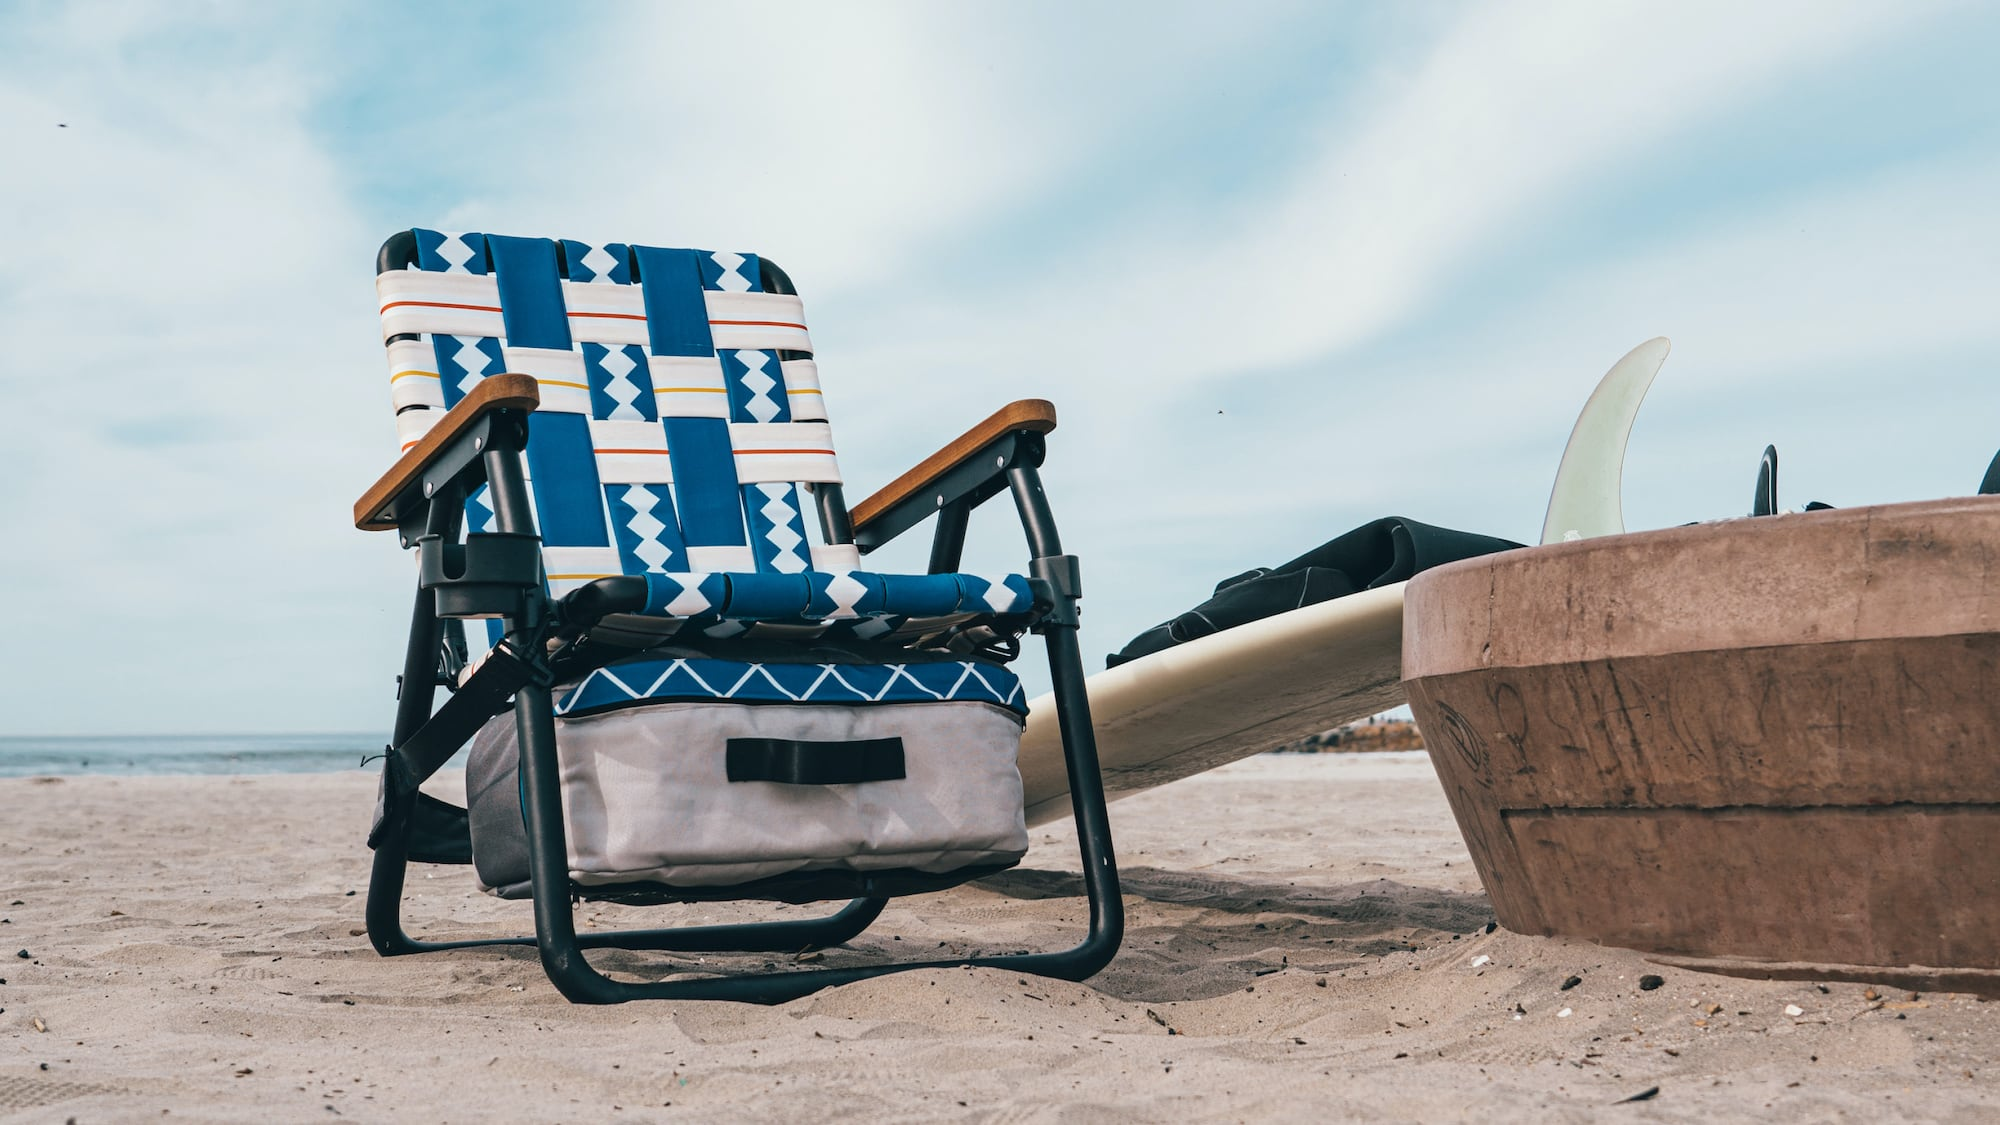 PARKIT Voyager Outdoor Recreation Chair